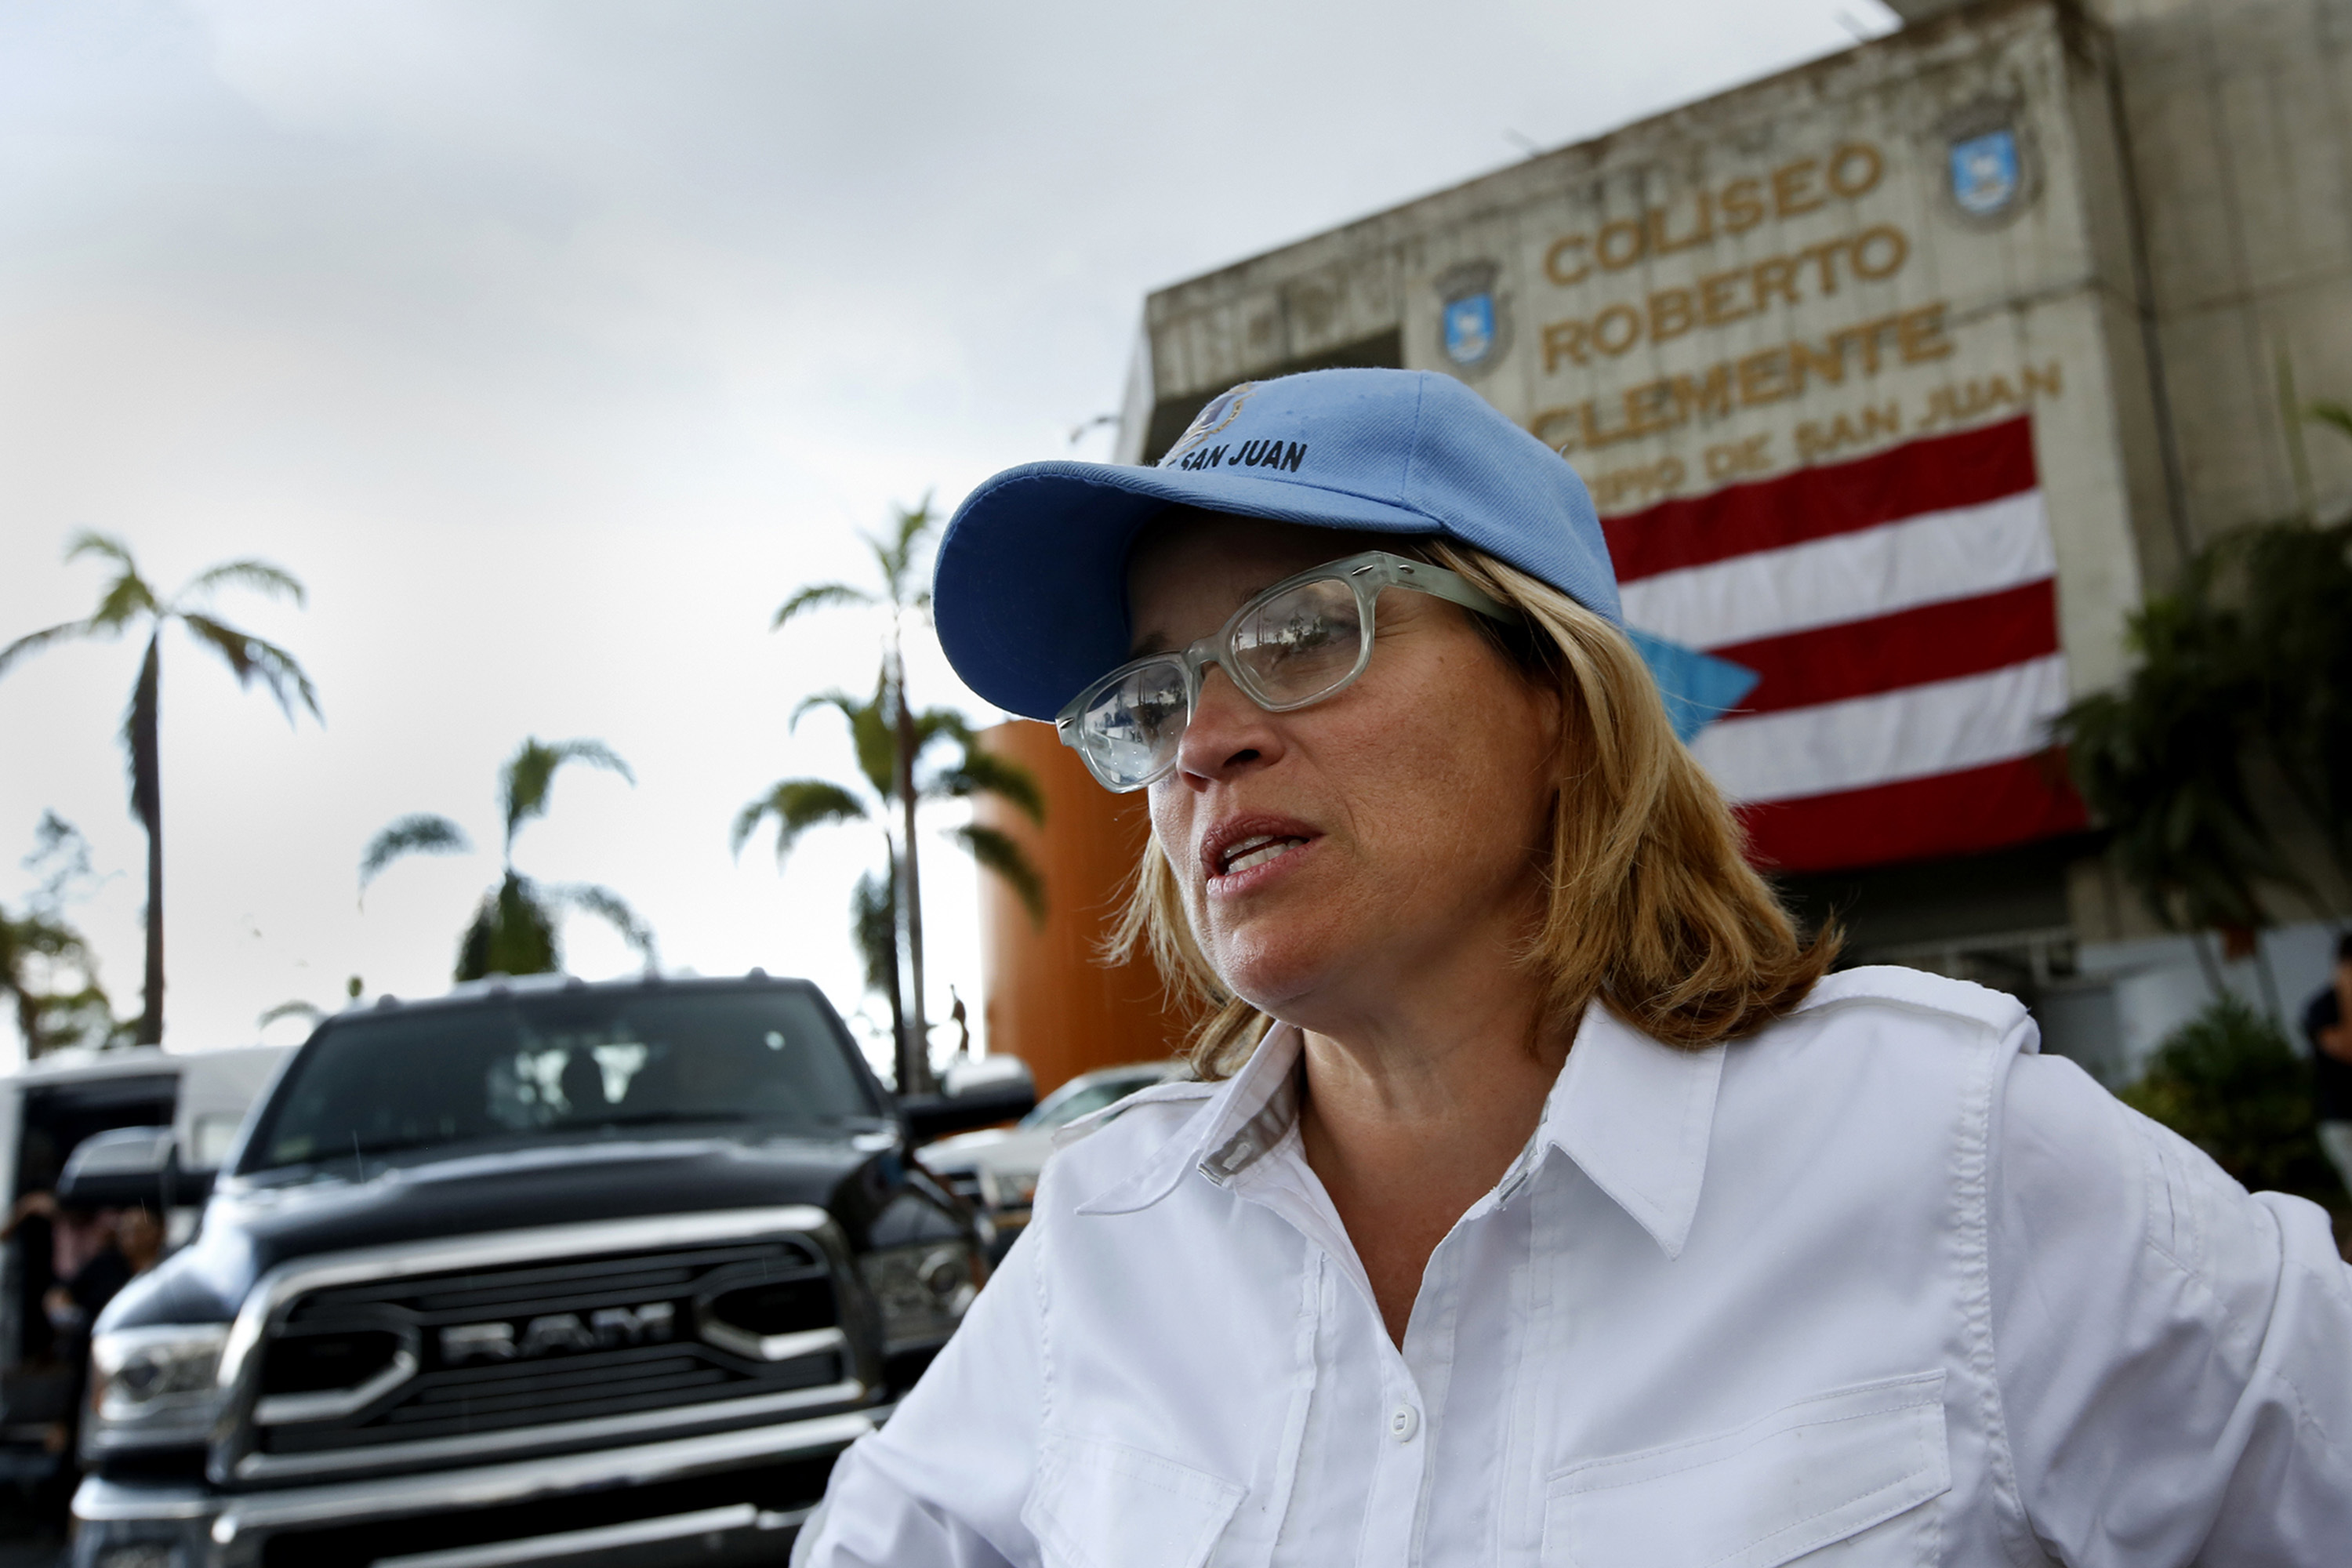 San Juan mayor Carmen Yulin Cruz.